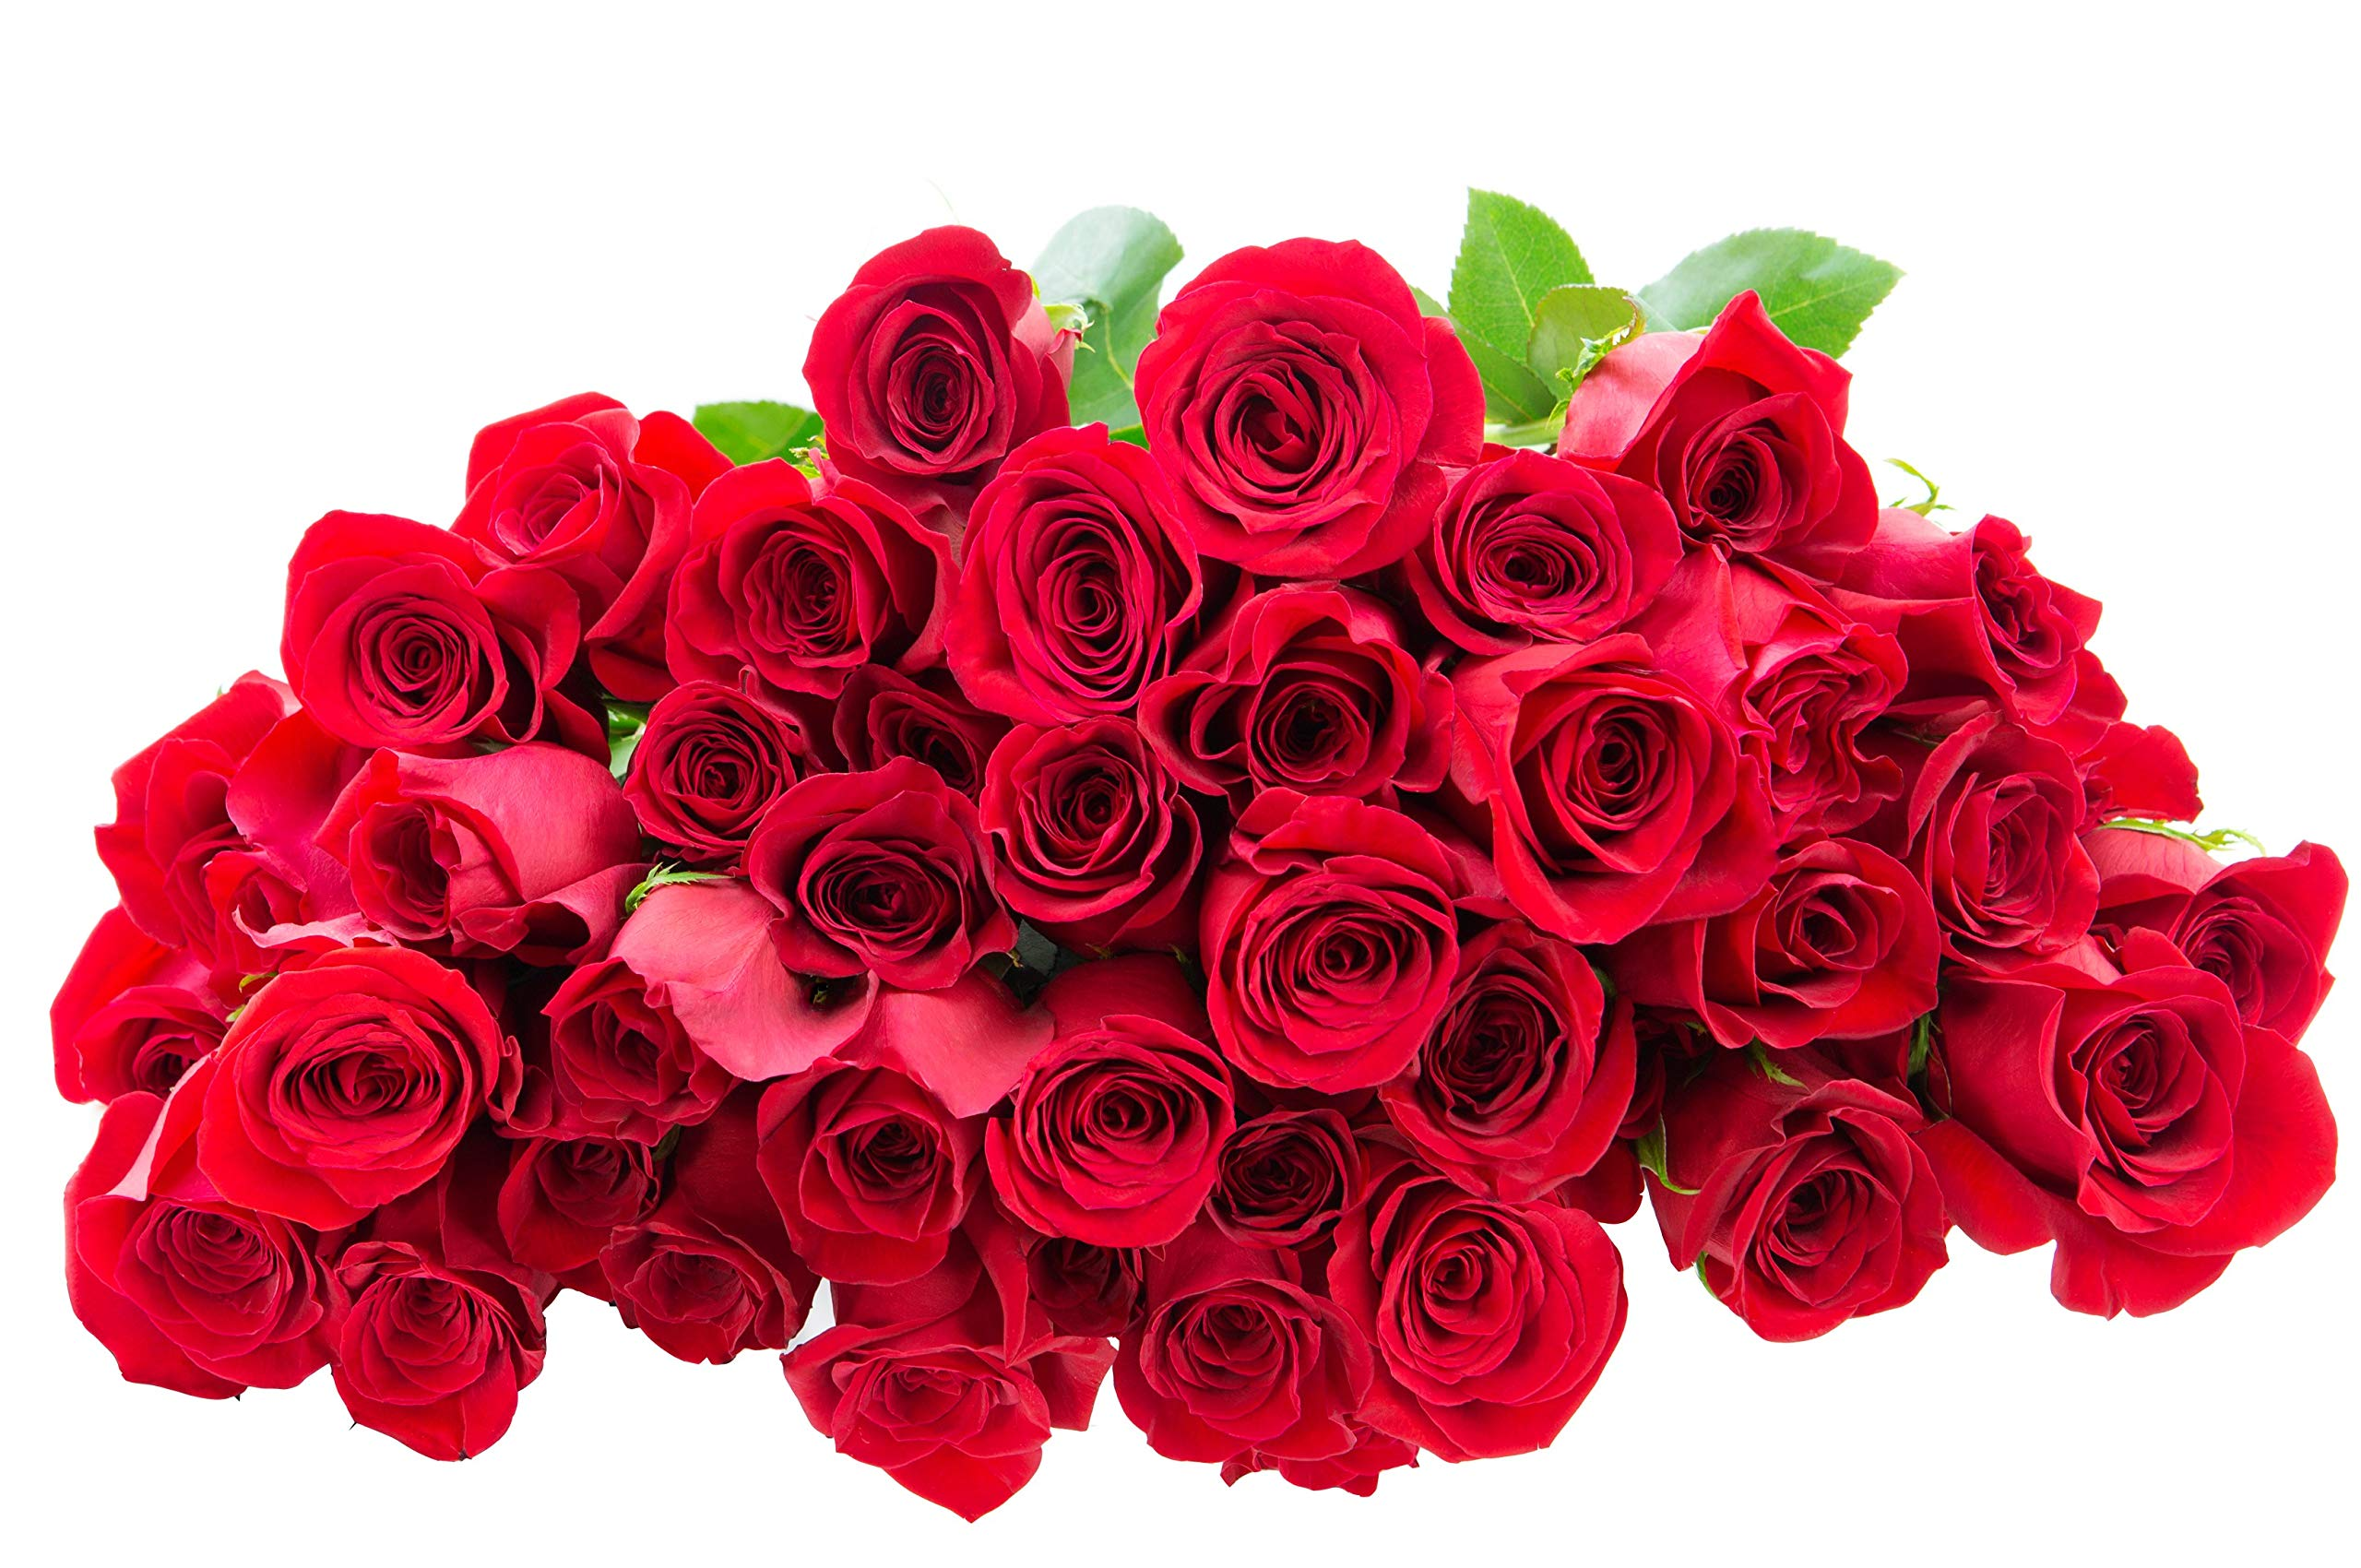 Blooms2Door 50 Red Roses (Farm-Fresh, Long Stem - 50cm) - Farm Direct Wholesale Fresh Flowers